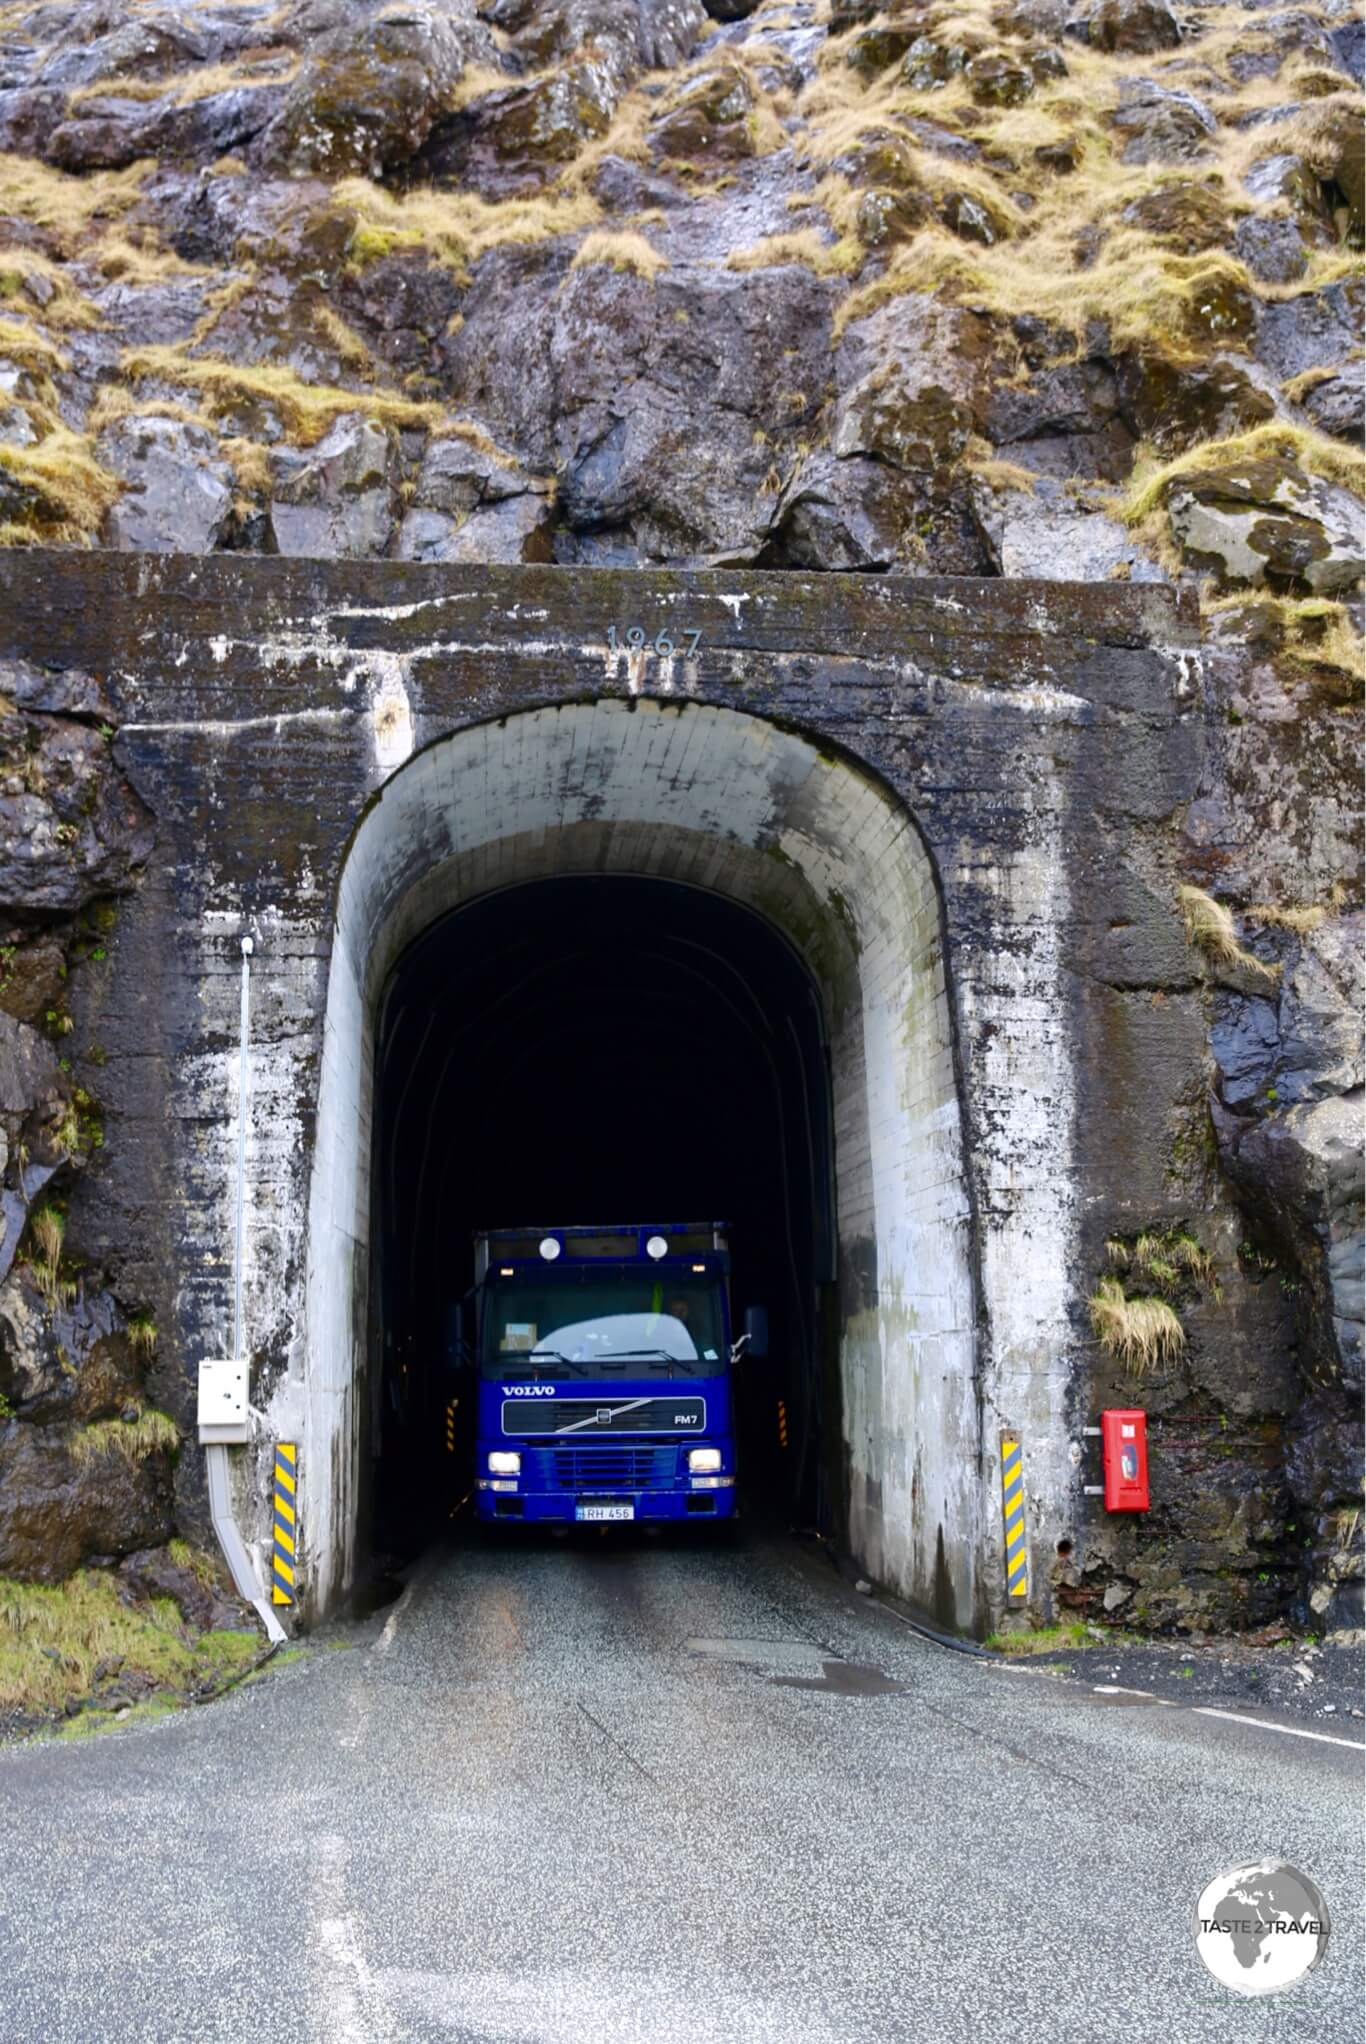 Entrance of the Hvannasundstunnilin (Hvannasund Tunnel) close to Norðdepil on the island of Borðoy.